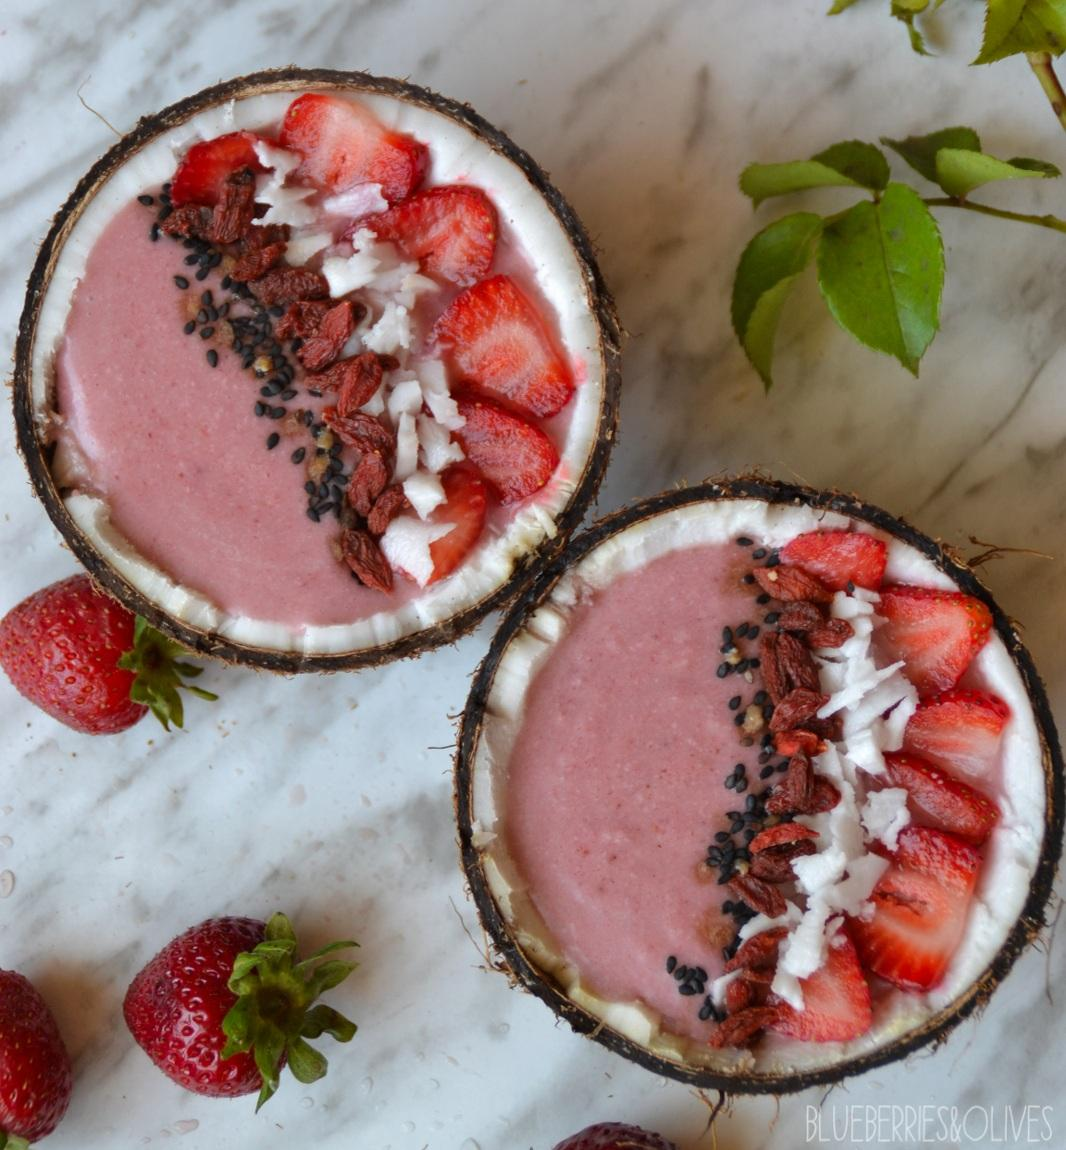 Smoothie bowl de fresas y coco - Strawberry and coconut smoothie bowl